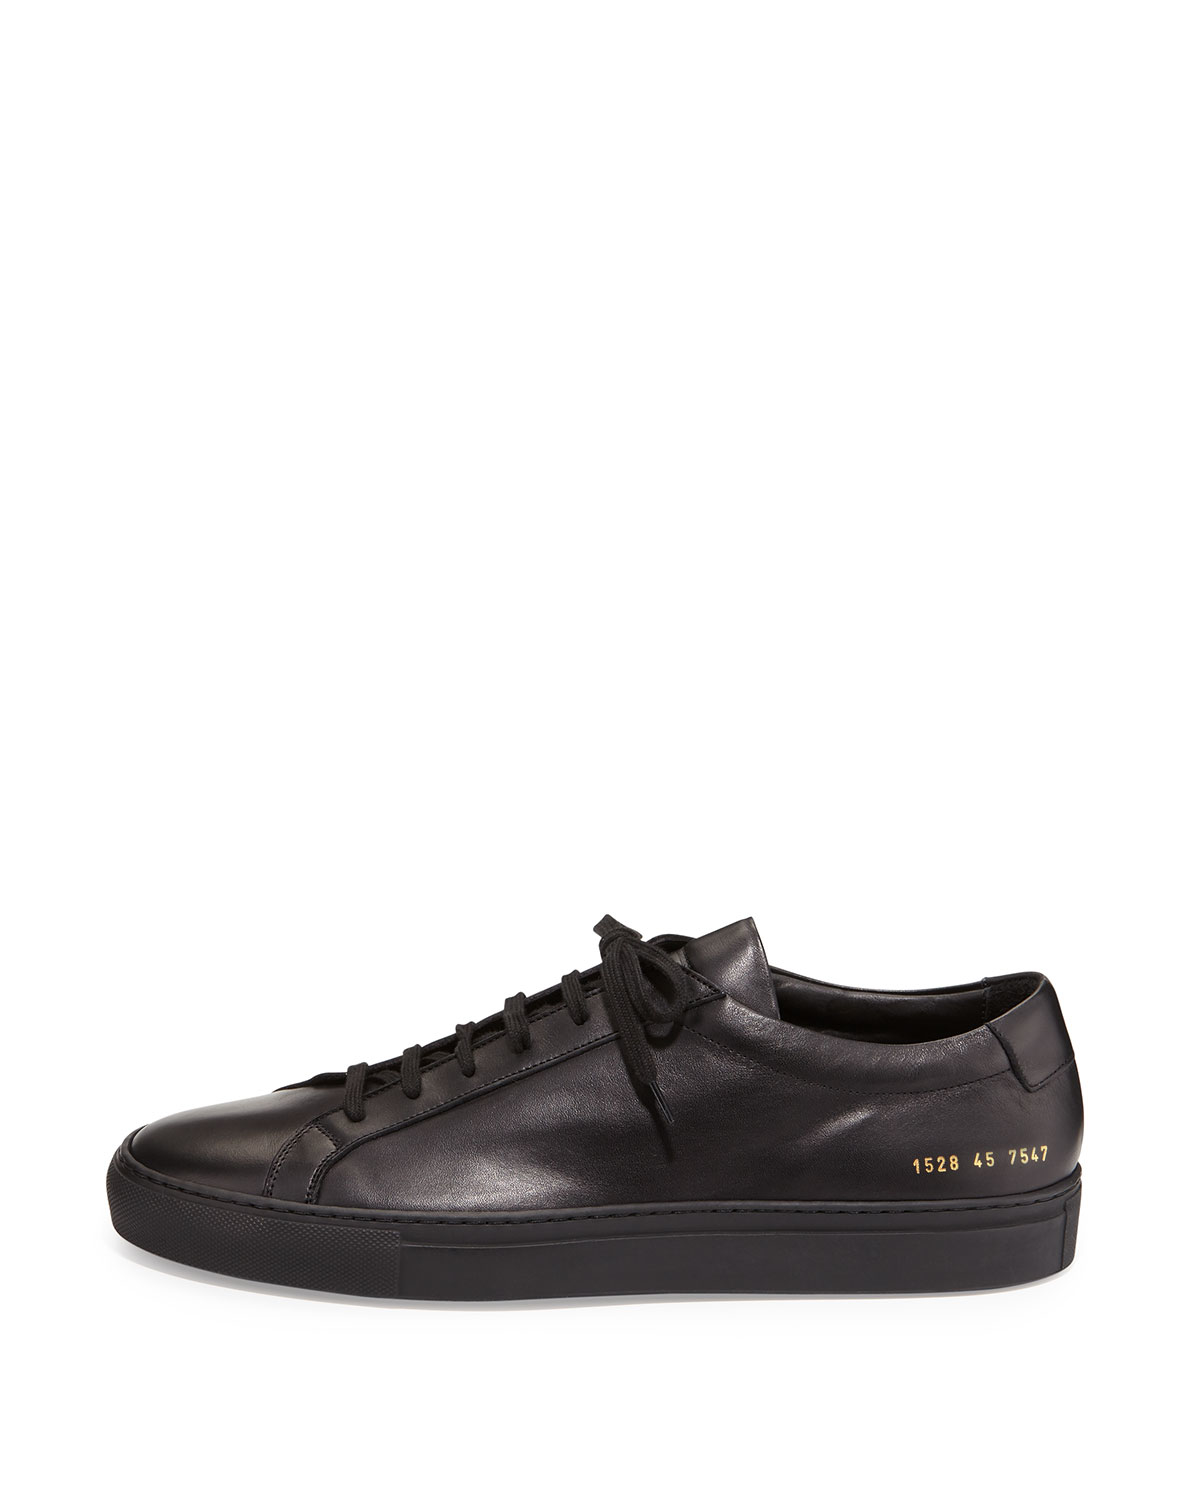 common projects achilles low top sneaker in black for men lyst. Black Bedroom Furniture Sets. Home Design Ideas